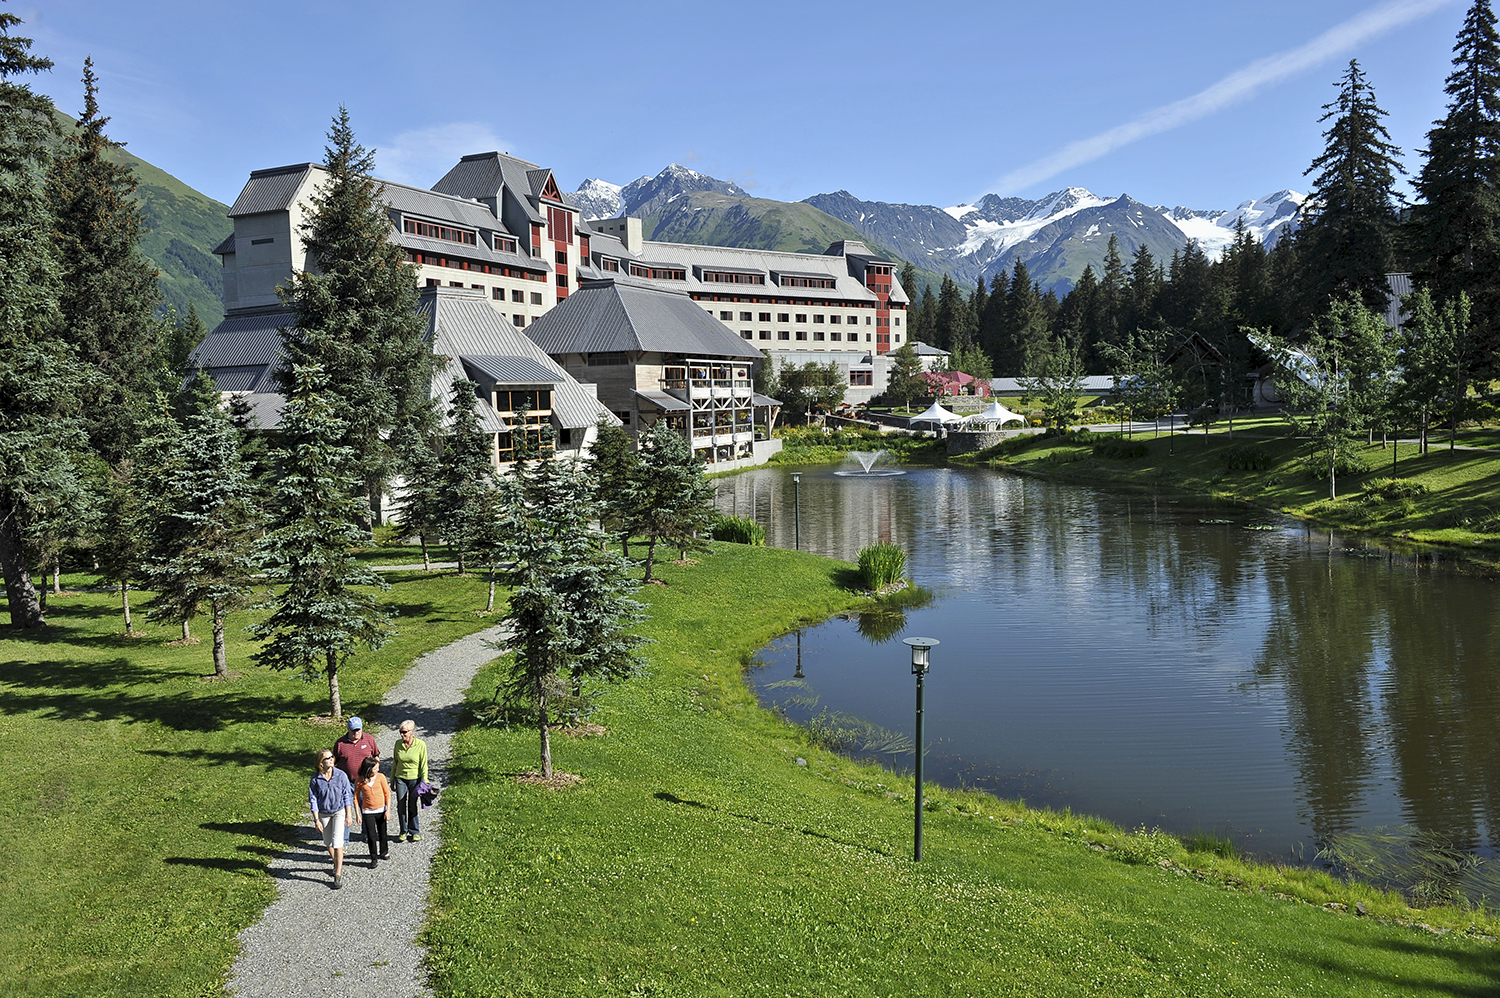 The chateau-style hotel is set in a lush valley surrounded by mountain peaks, hanging glaciers and ocean views.